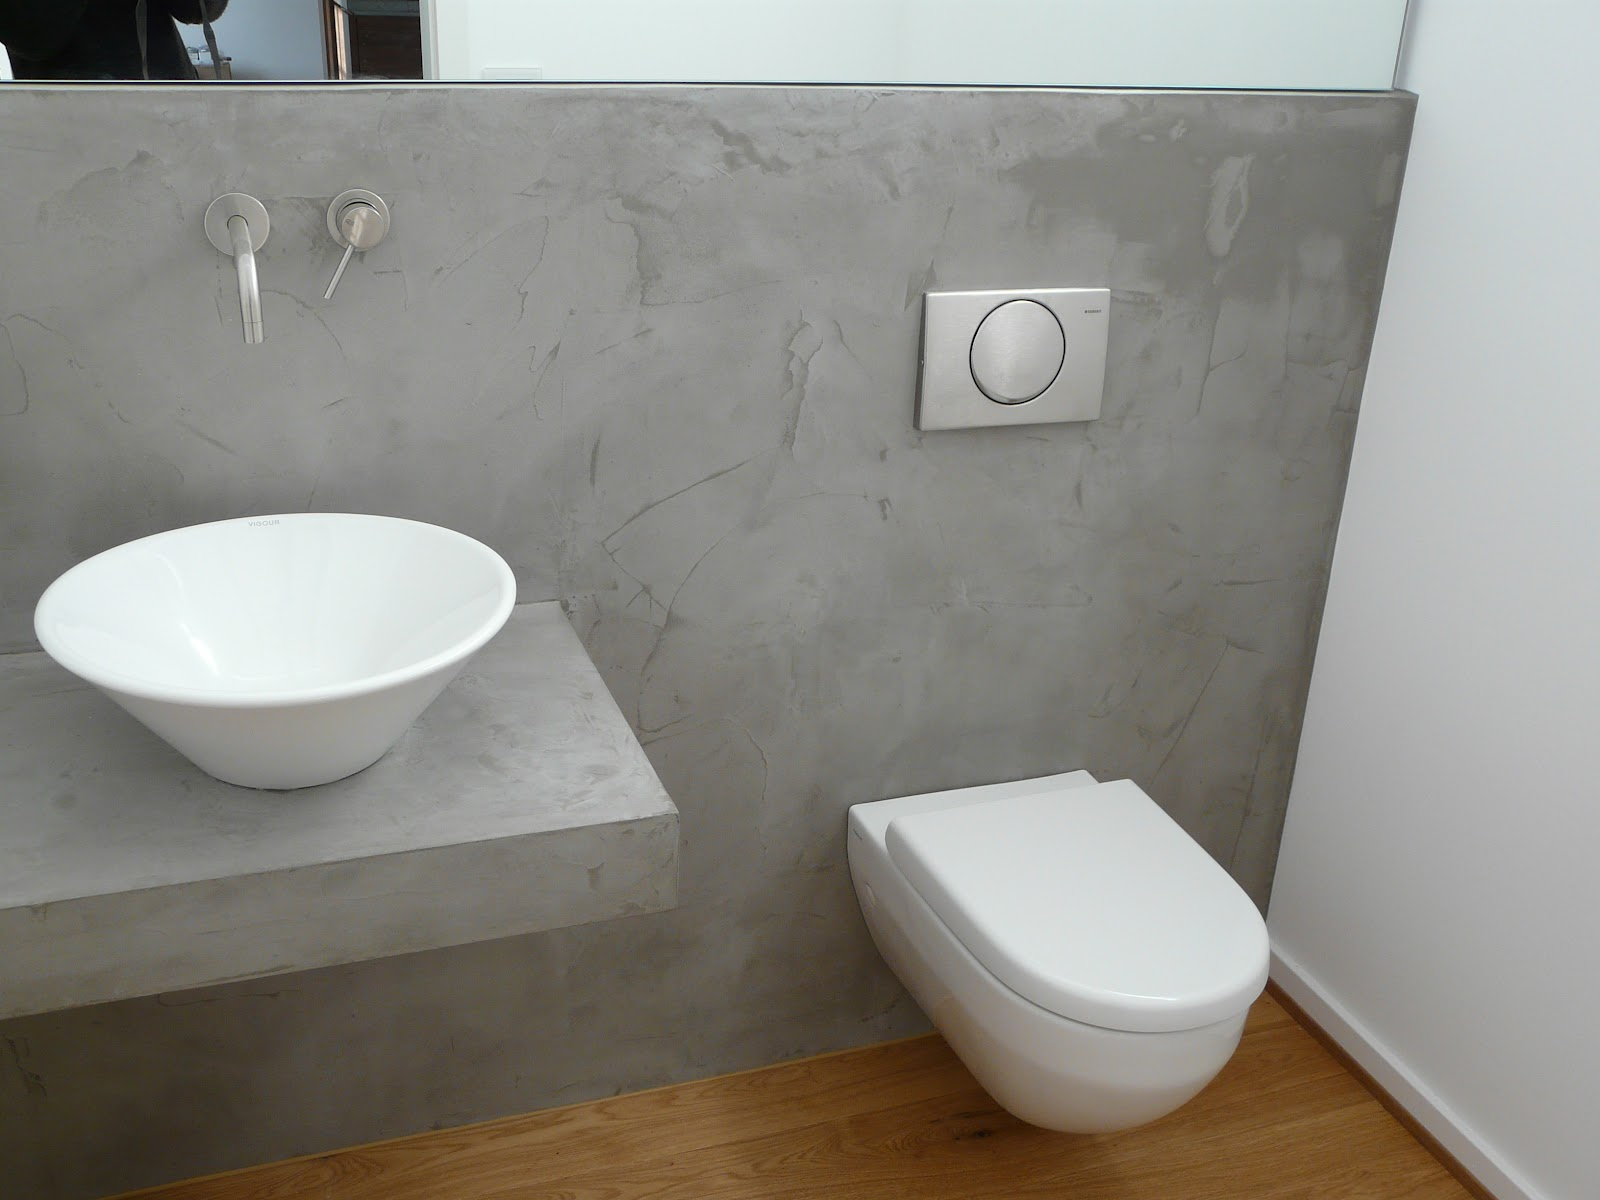 Wand wohndesign beton cire november 2011 - Wand in betonoptik ...